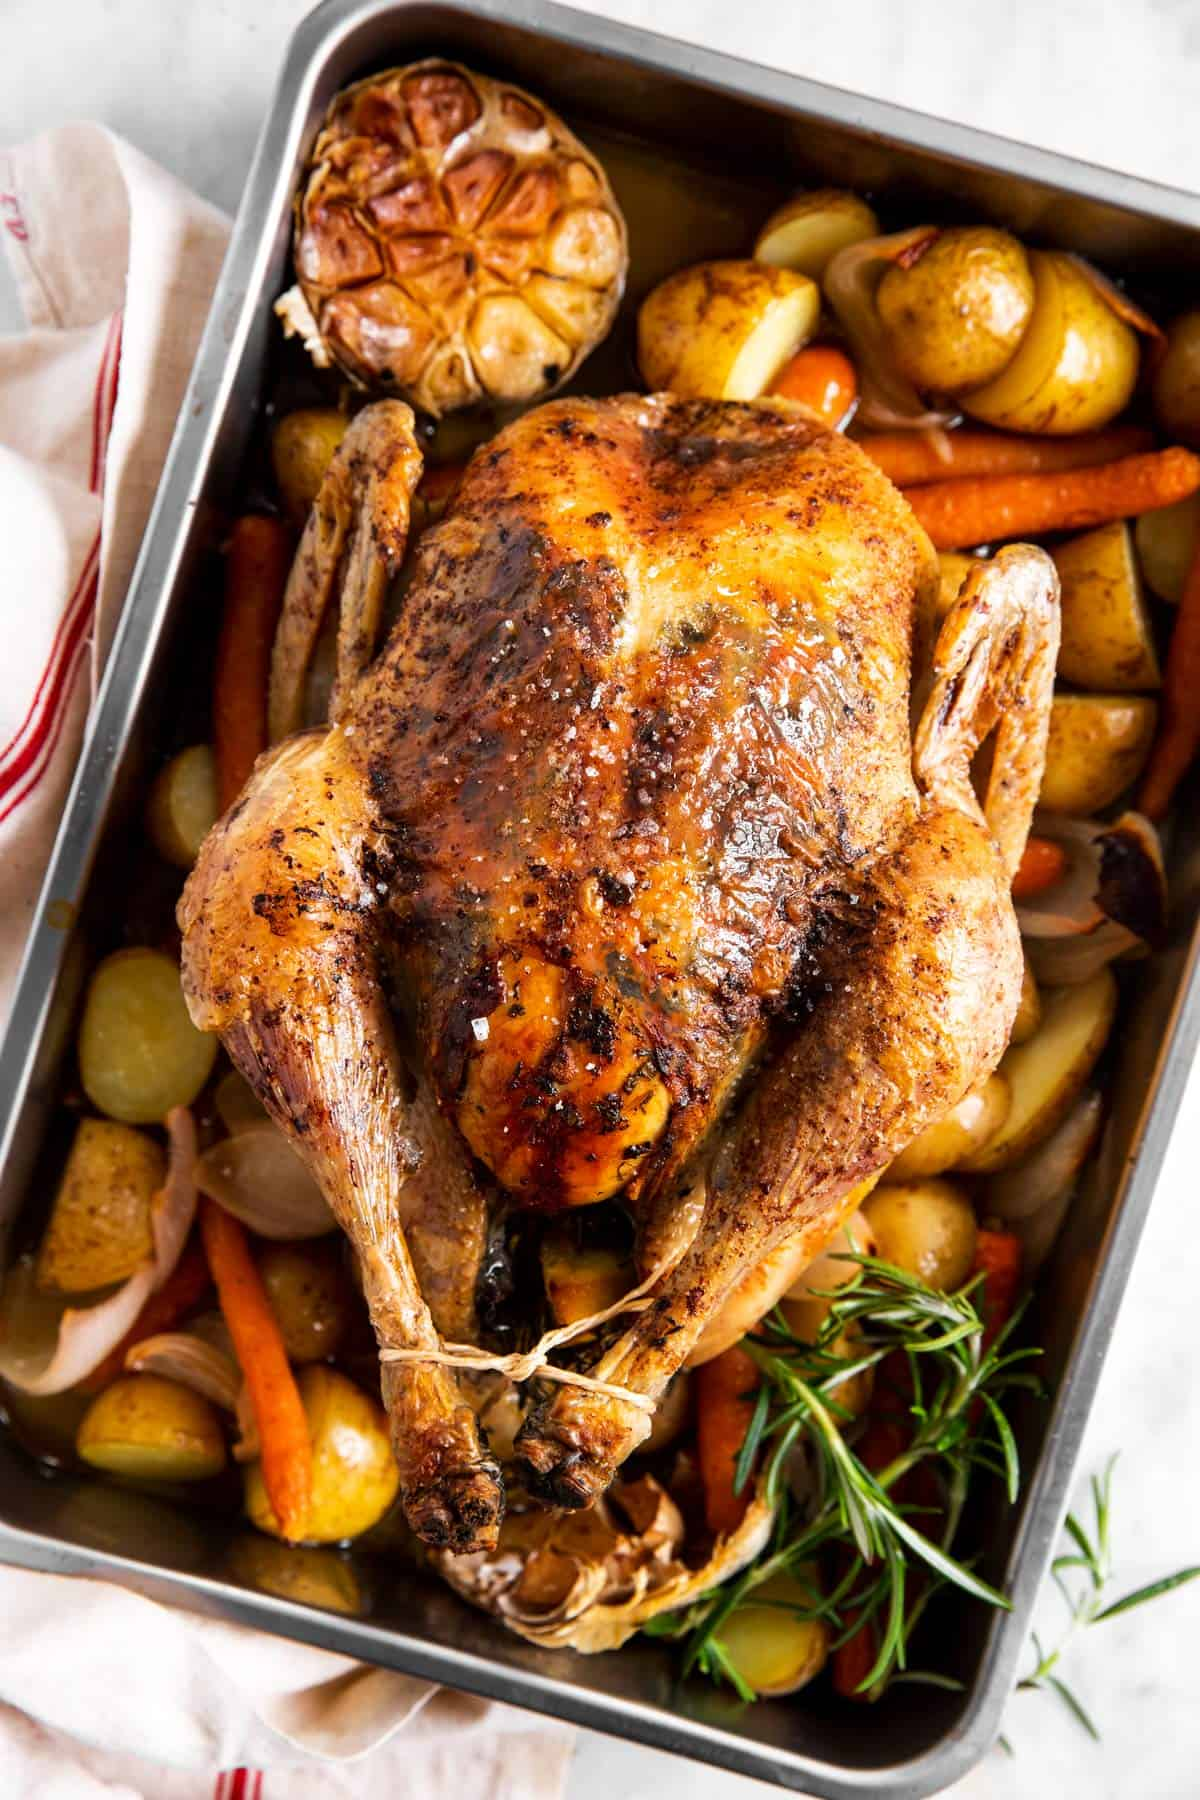 overhead view of whole roasted chicken in roasting pan with carrots and potatoes